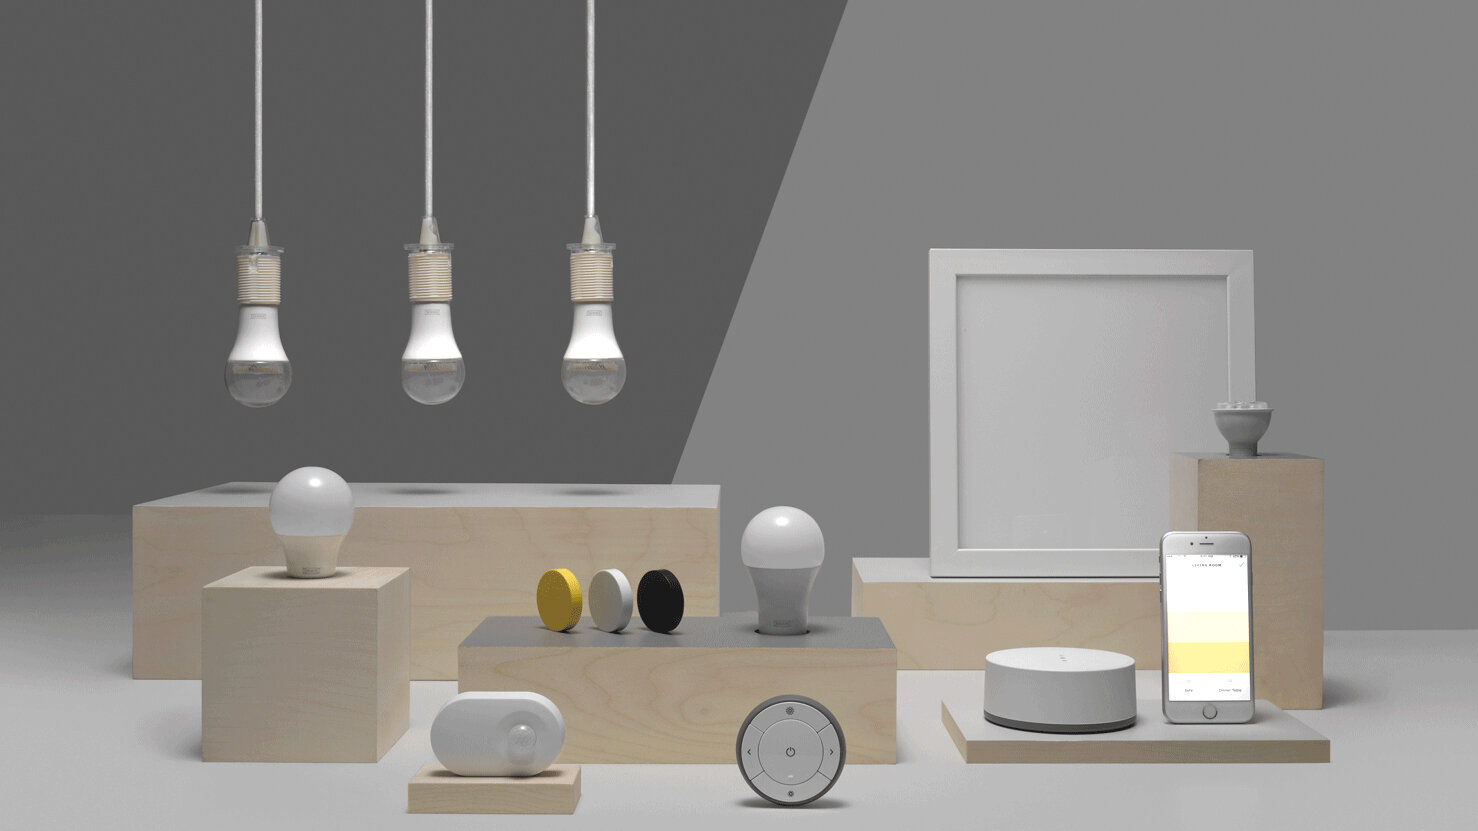 Here S Why Ikea S Moves In The Smart Home Are Such A Big Deal Yonomi